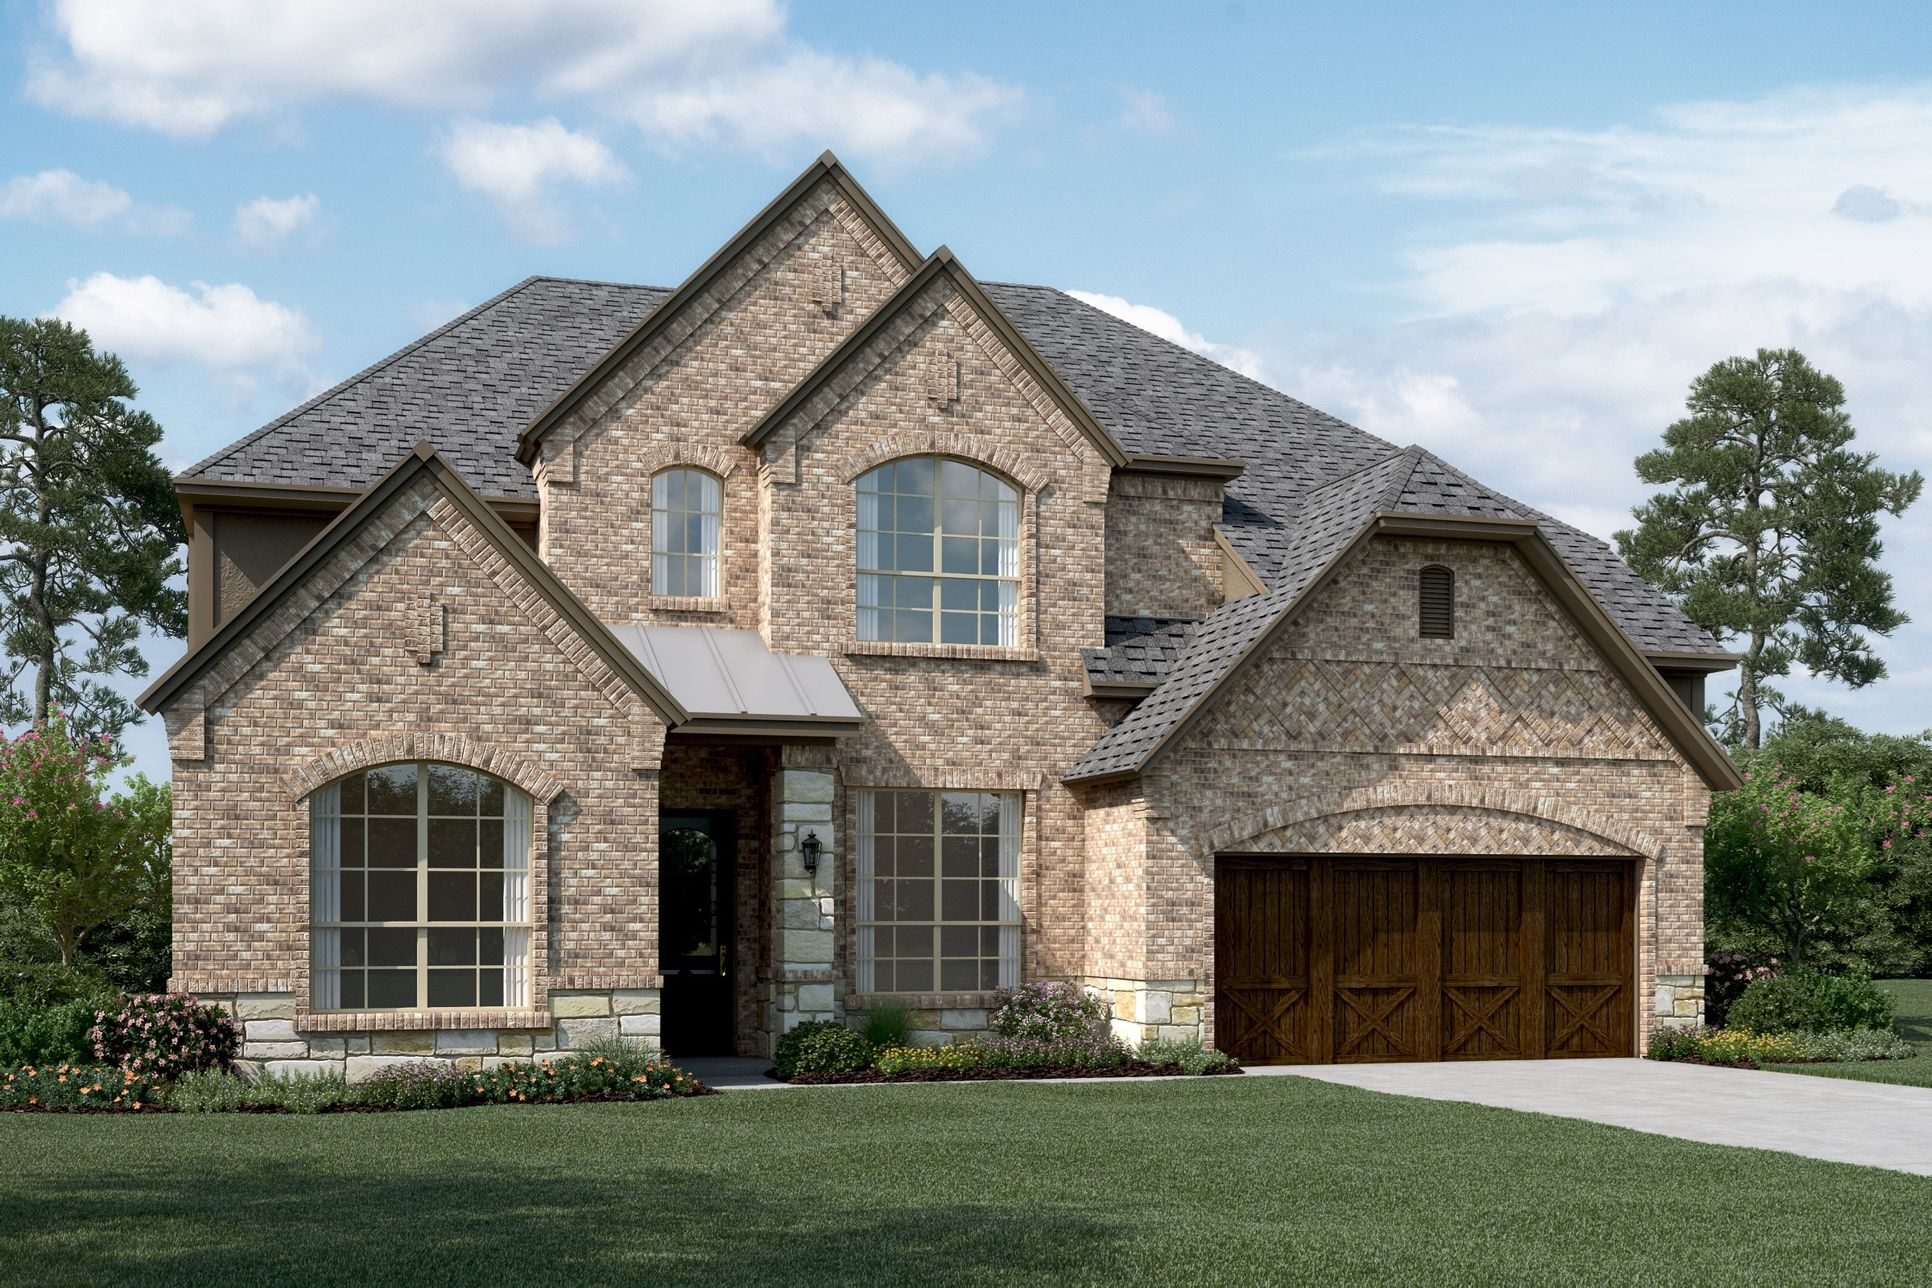 Exterior:Graystone III - E - Shown with stone